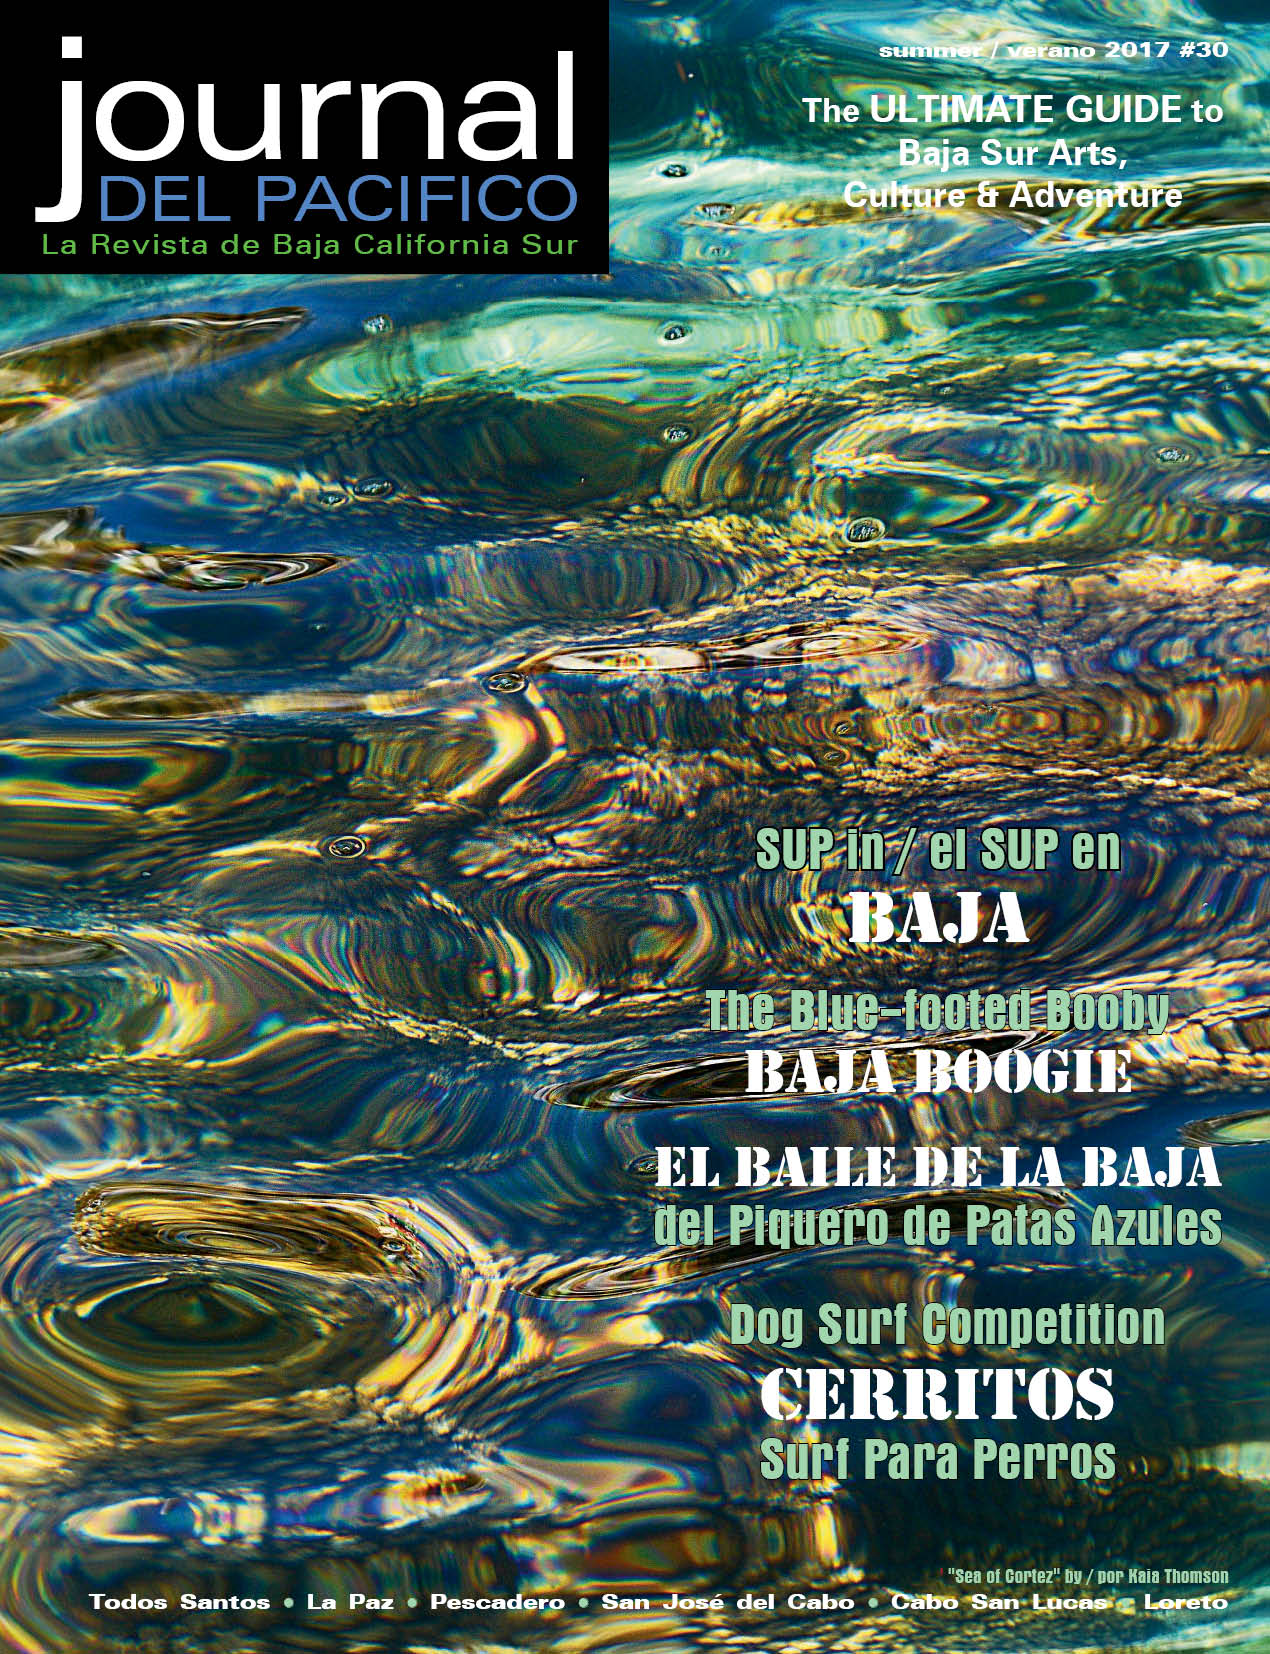 Summer 2017 Issue of Journal del Pacifico